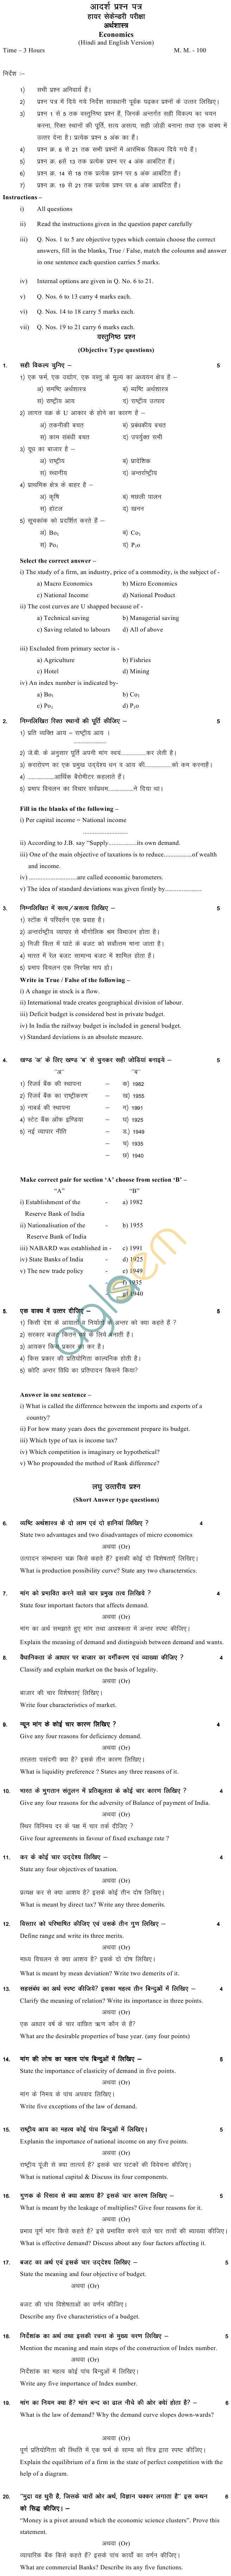 MP Board Class XII Economics Model Questions & Answers - Set 2